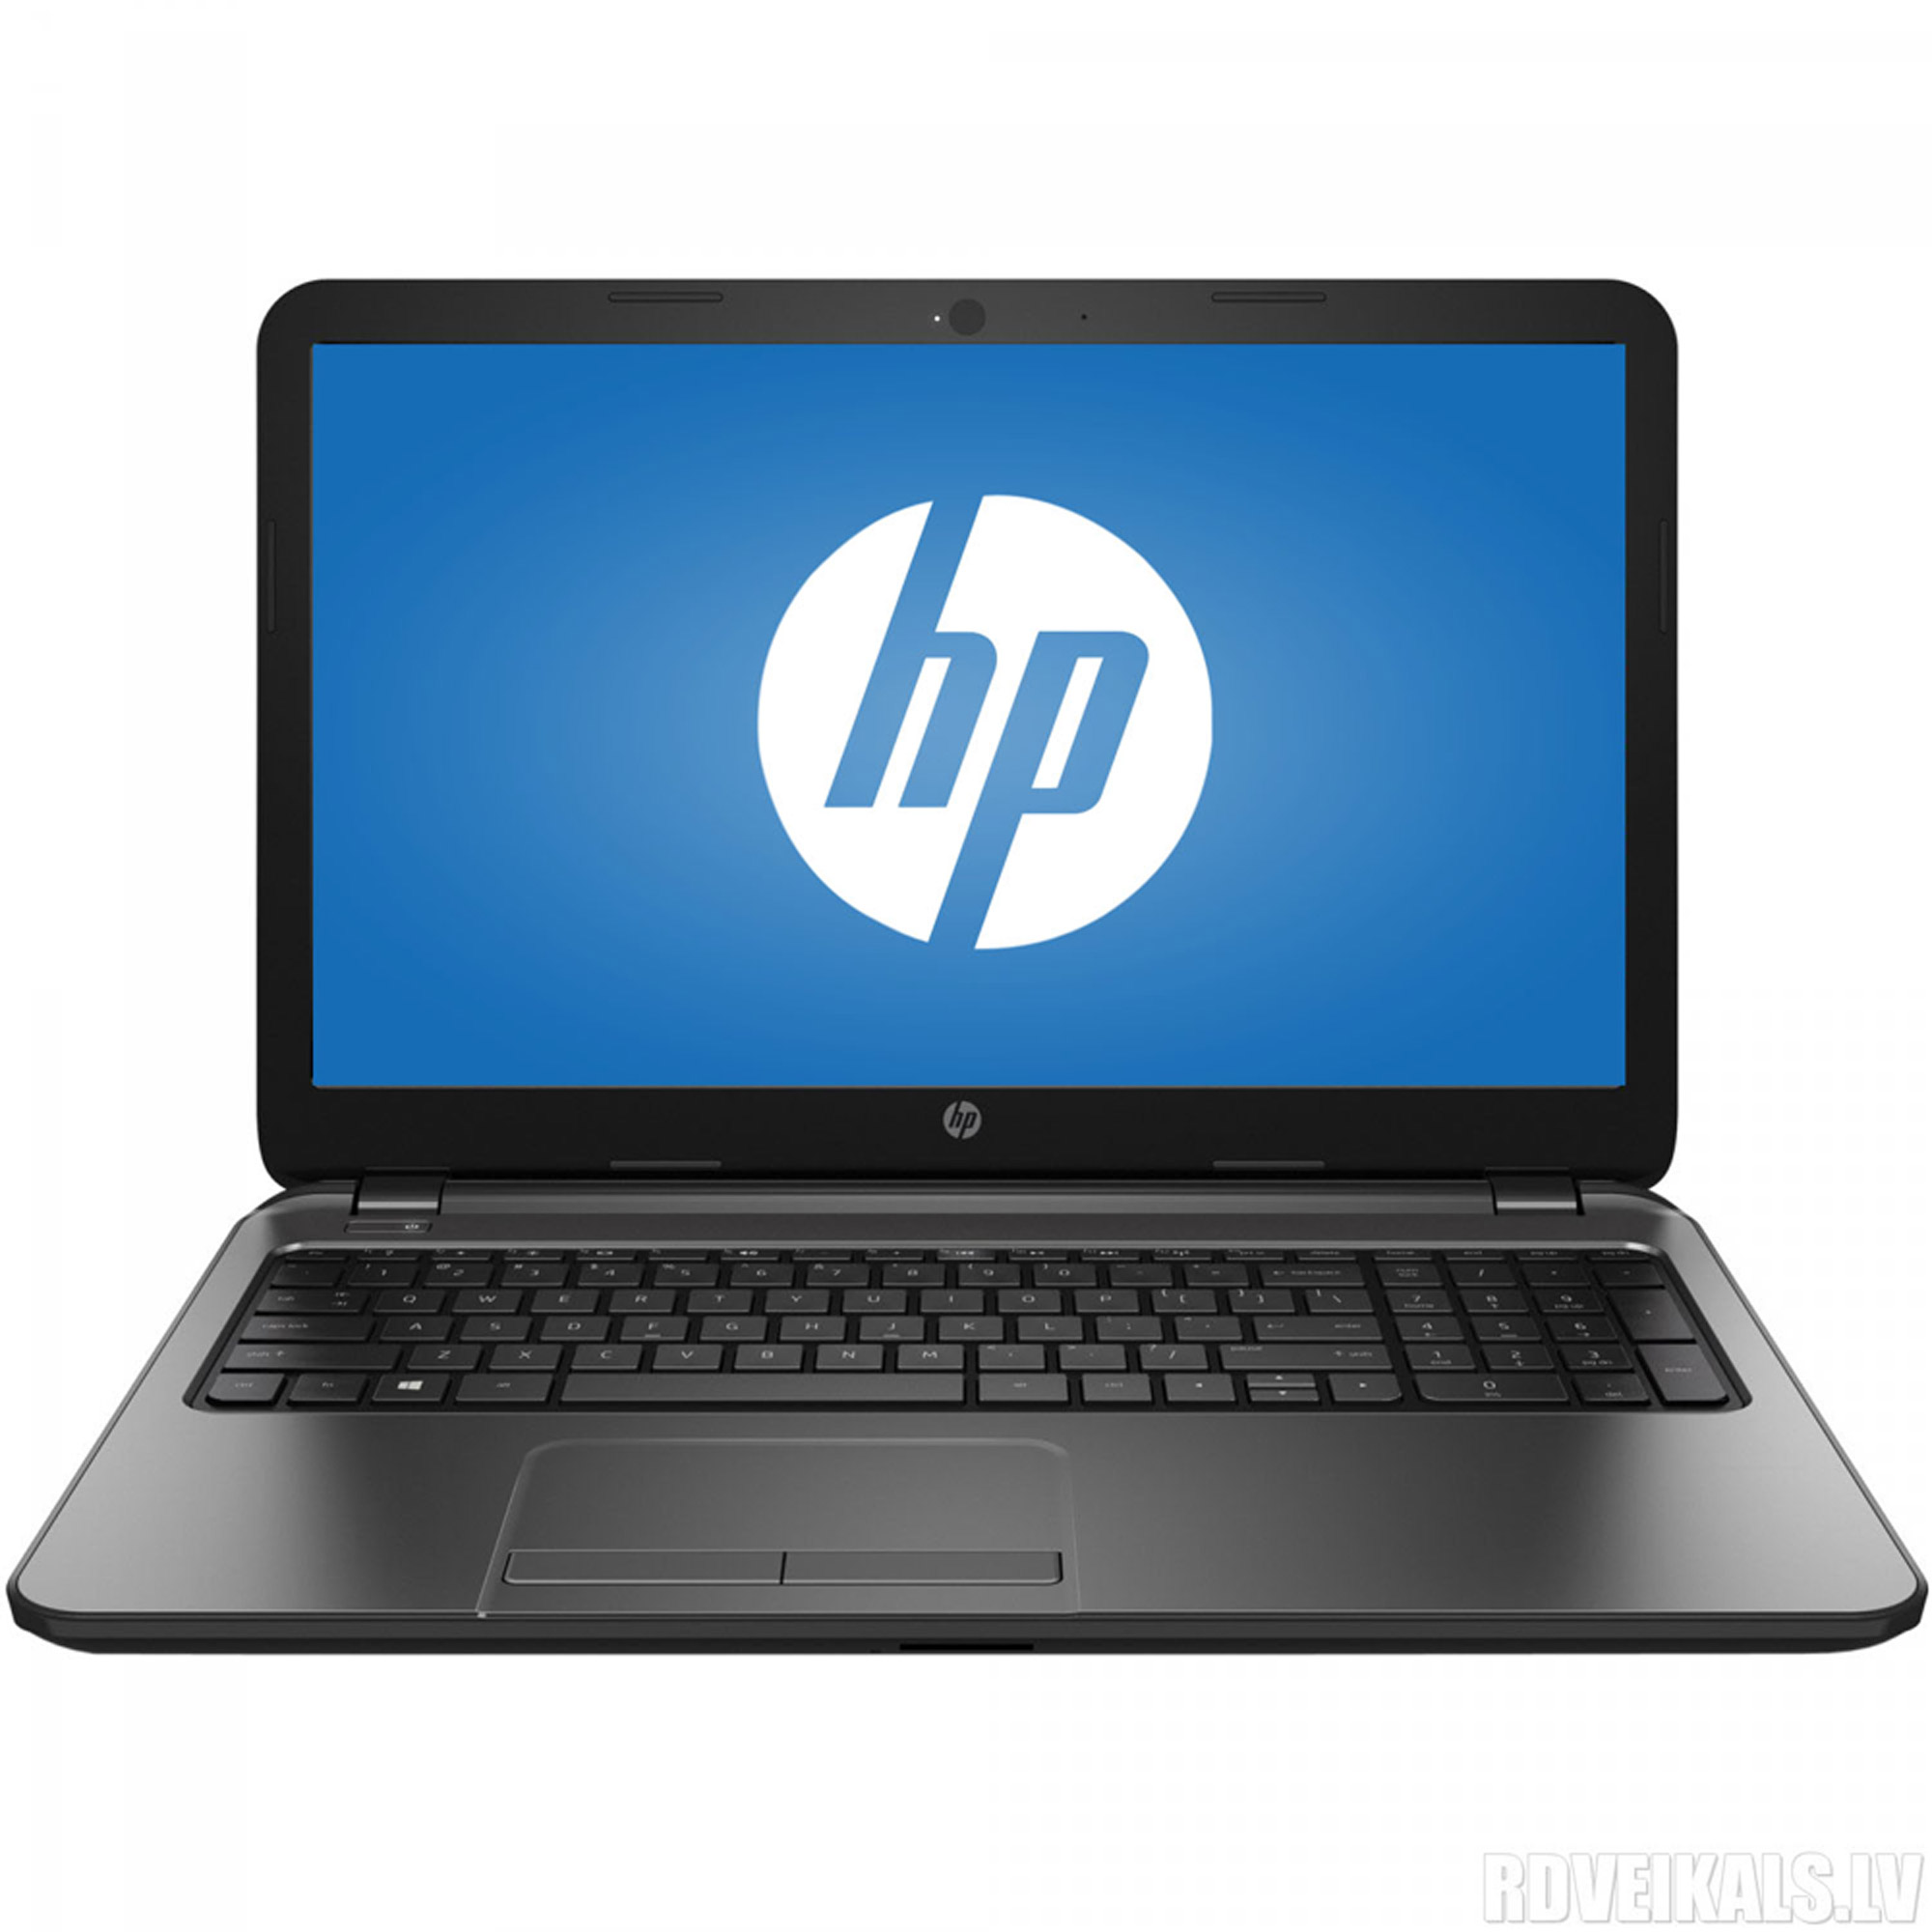 "Refurbished HP Black 15.6"" 15-F018DX Laptop PC with Intel Core i3-0430U Processor, 6GB Memory, 750GB Hard Drive and Windows 8.1 (Eligible for Free Windows 10 Upgrade)"